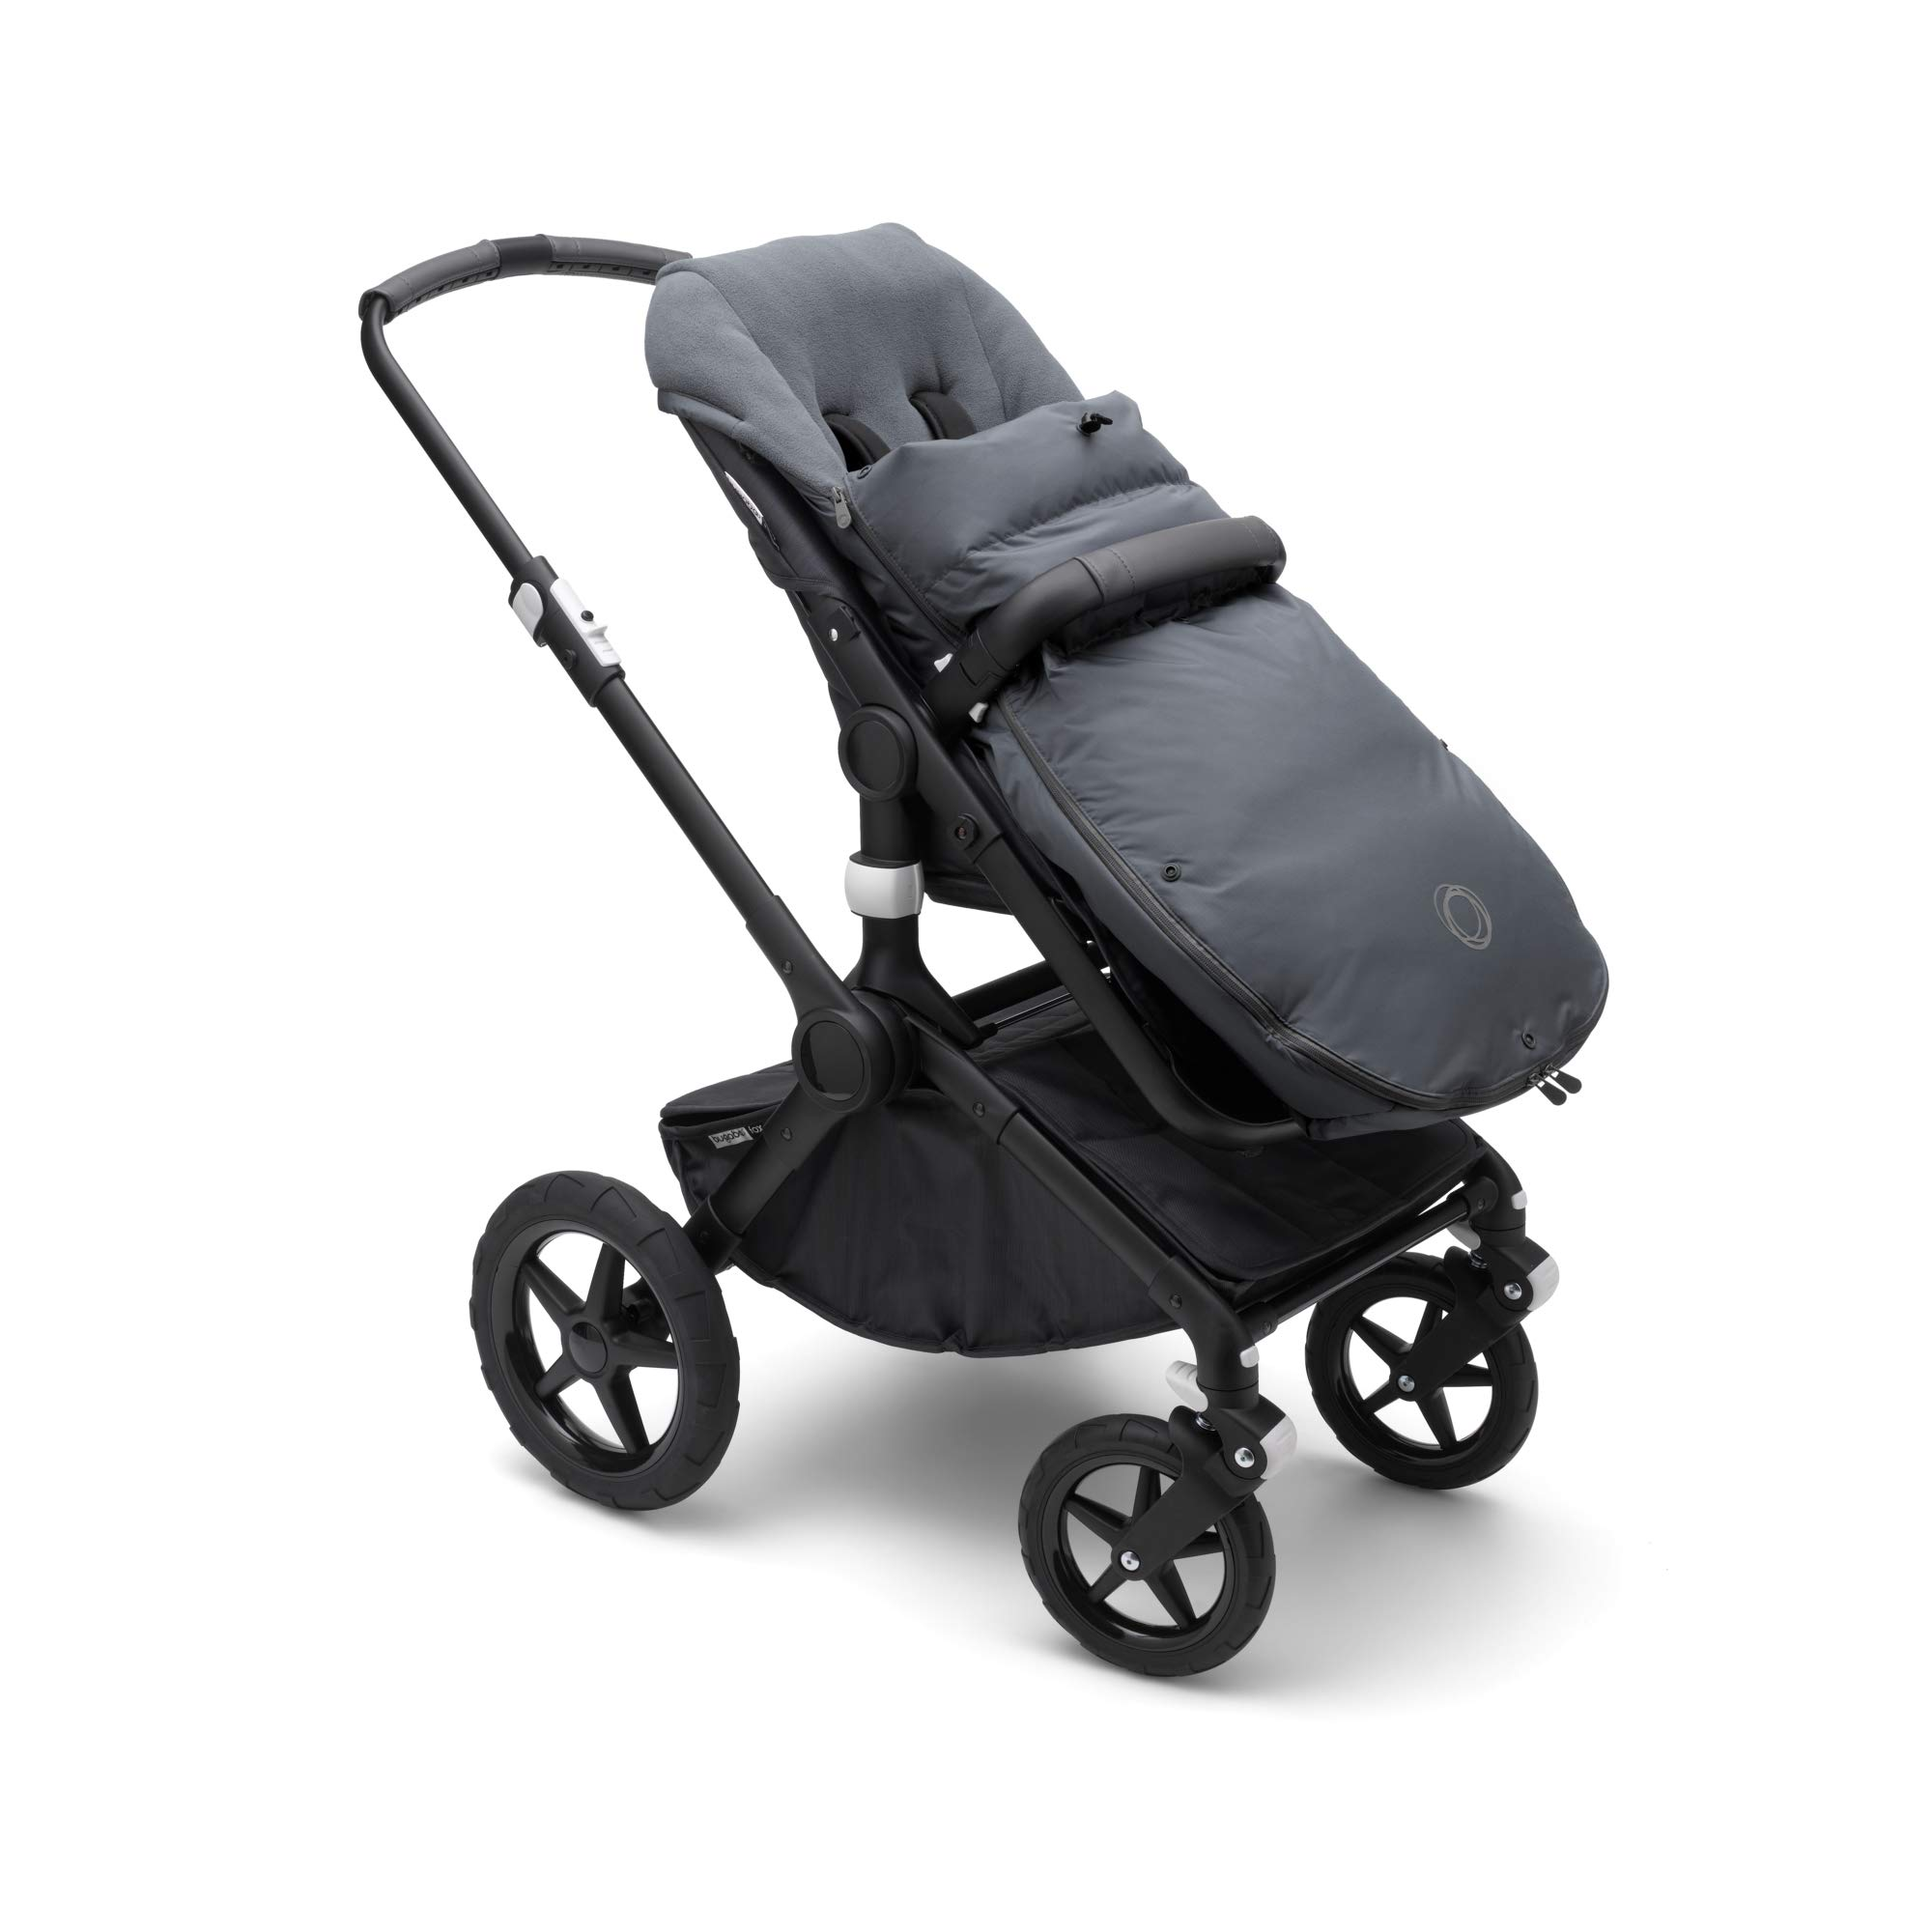 Bugaboo High Performance Footmuff - Stellar - Down-Filled Cover to Keep Your Baby Warm and Visible During Winter Days or Nights - Universally Compatible with All Bugaboo Strollers by Bugaboo (Image #3)